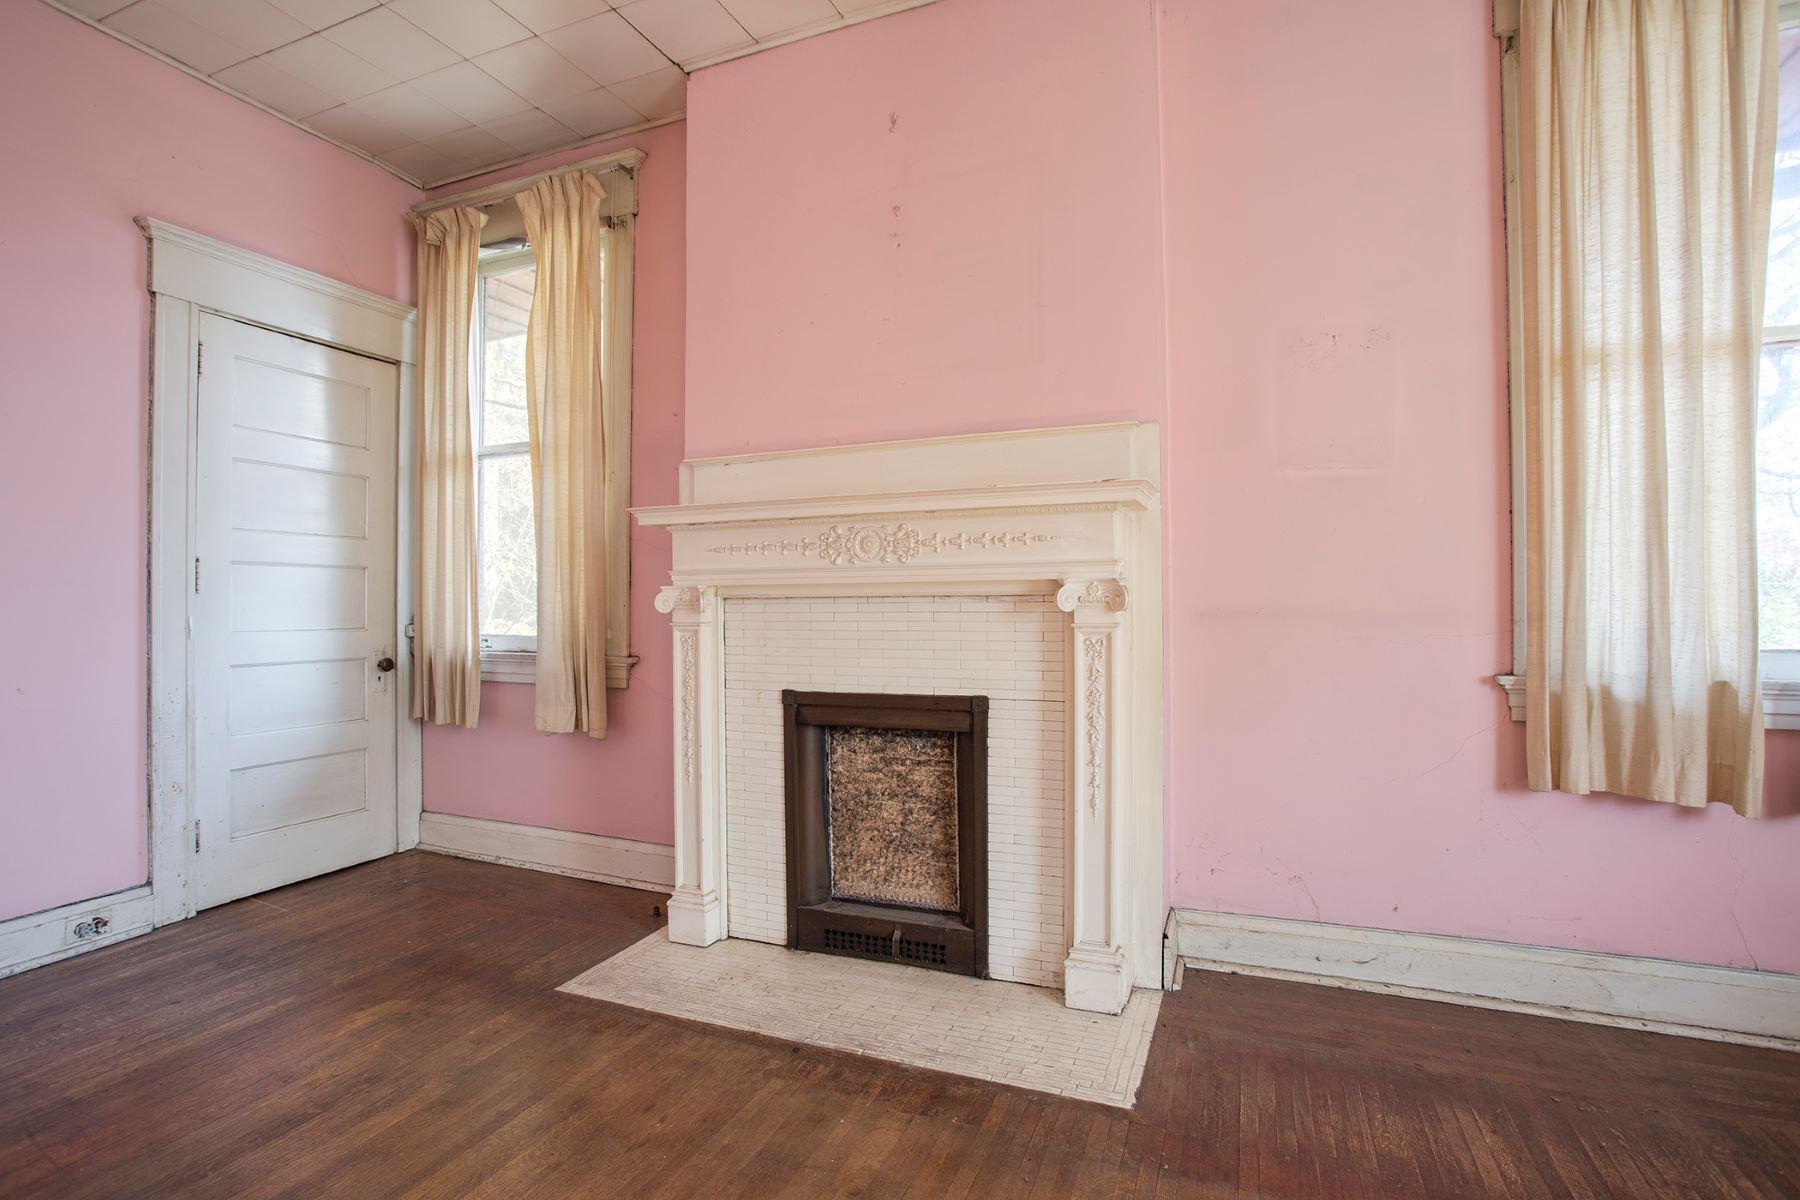 Additional photo for property listing at 311 Highland Terrace 311 Highland Ter Pittsburgh, Pennsylvania 15215 United States